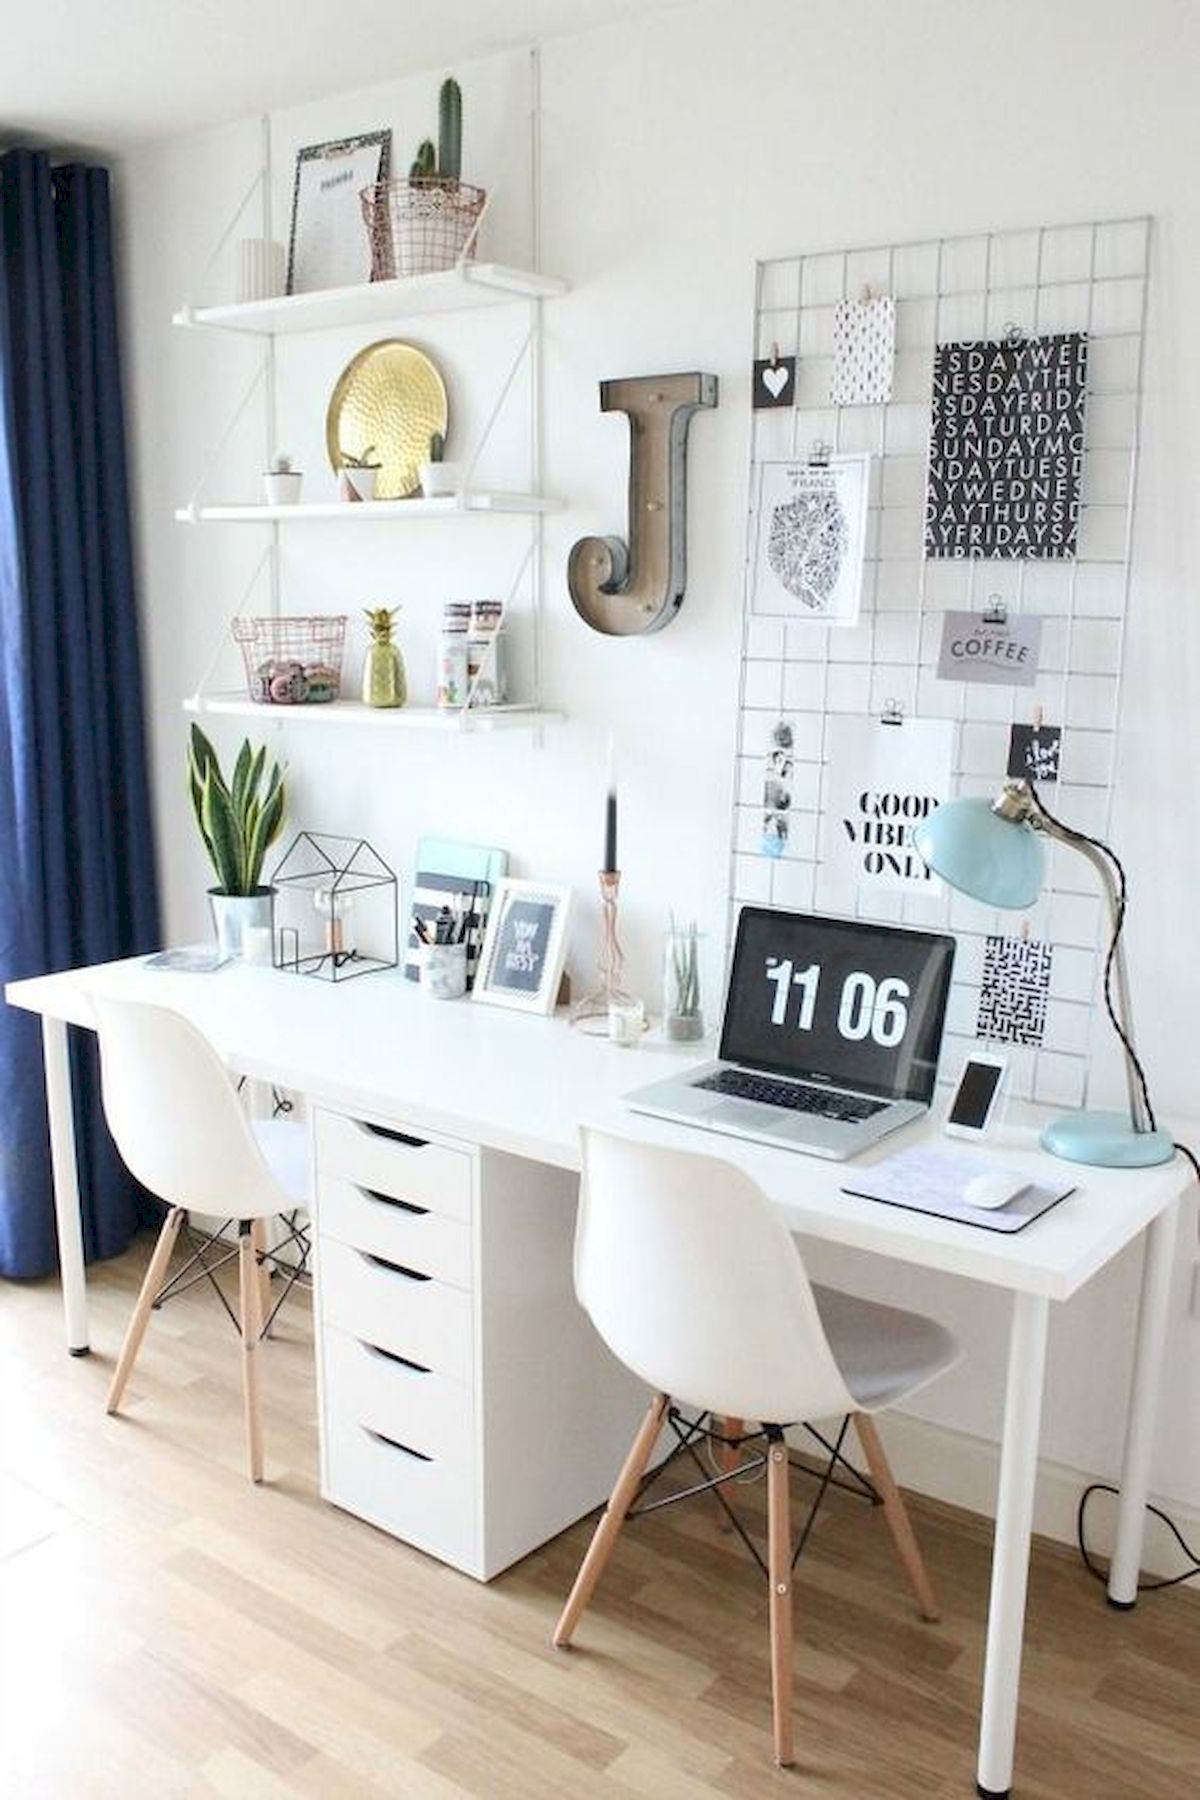 80 Wonderful Diy Art Desk Work Stations Ideas And Decorations 45 Artmyideas,How To Design An Office Chair